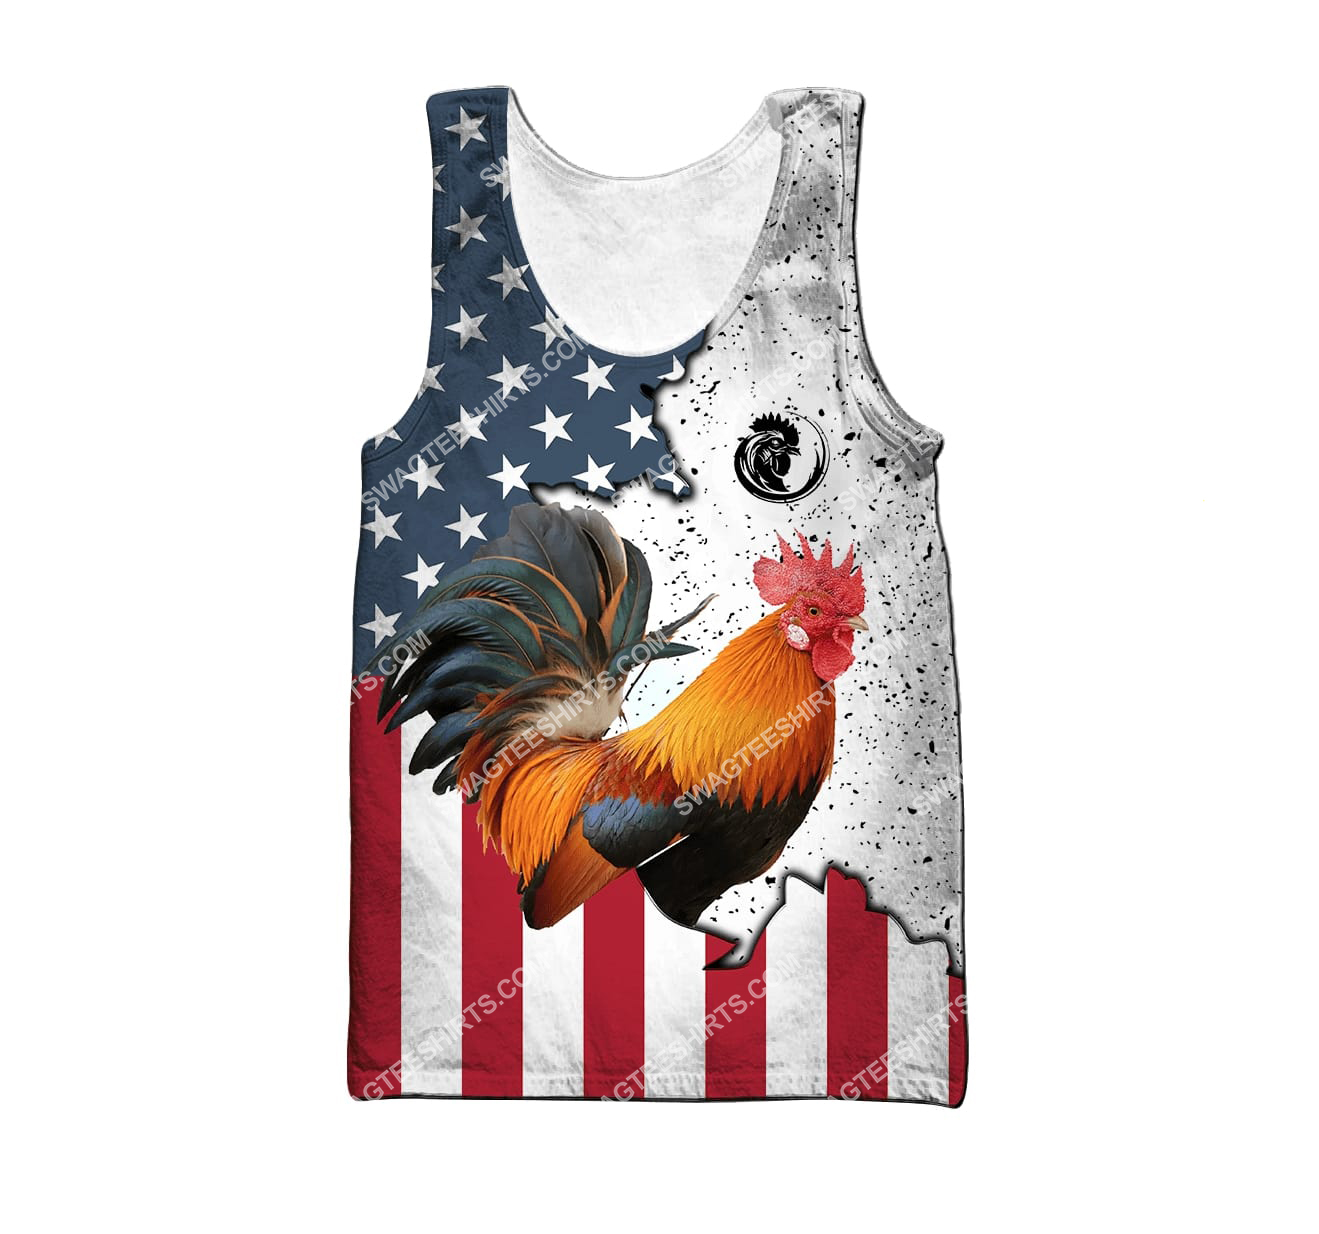 the american flag and rooster full printing tank top 1